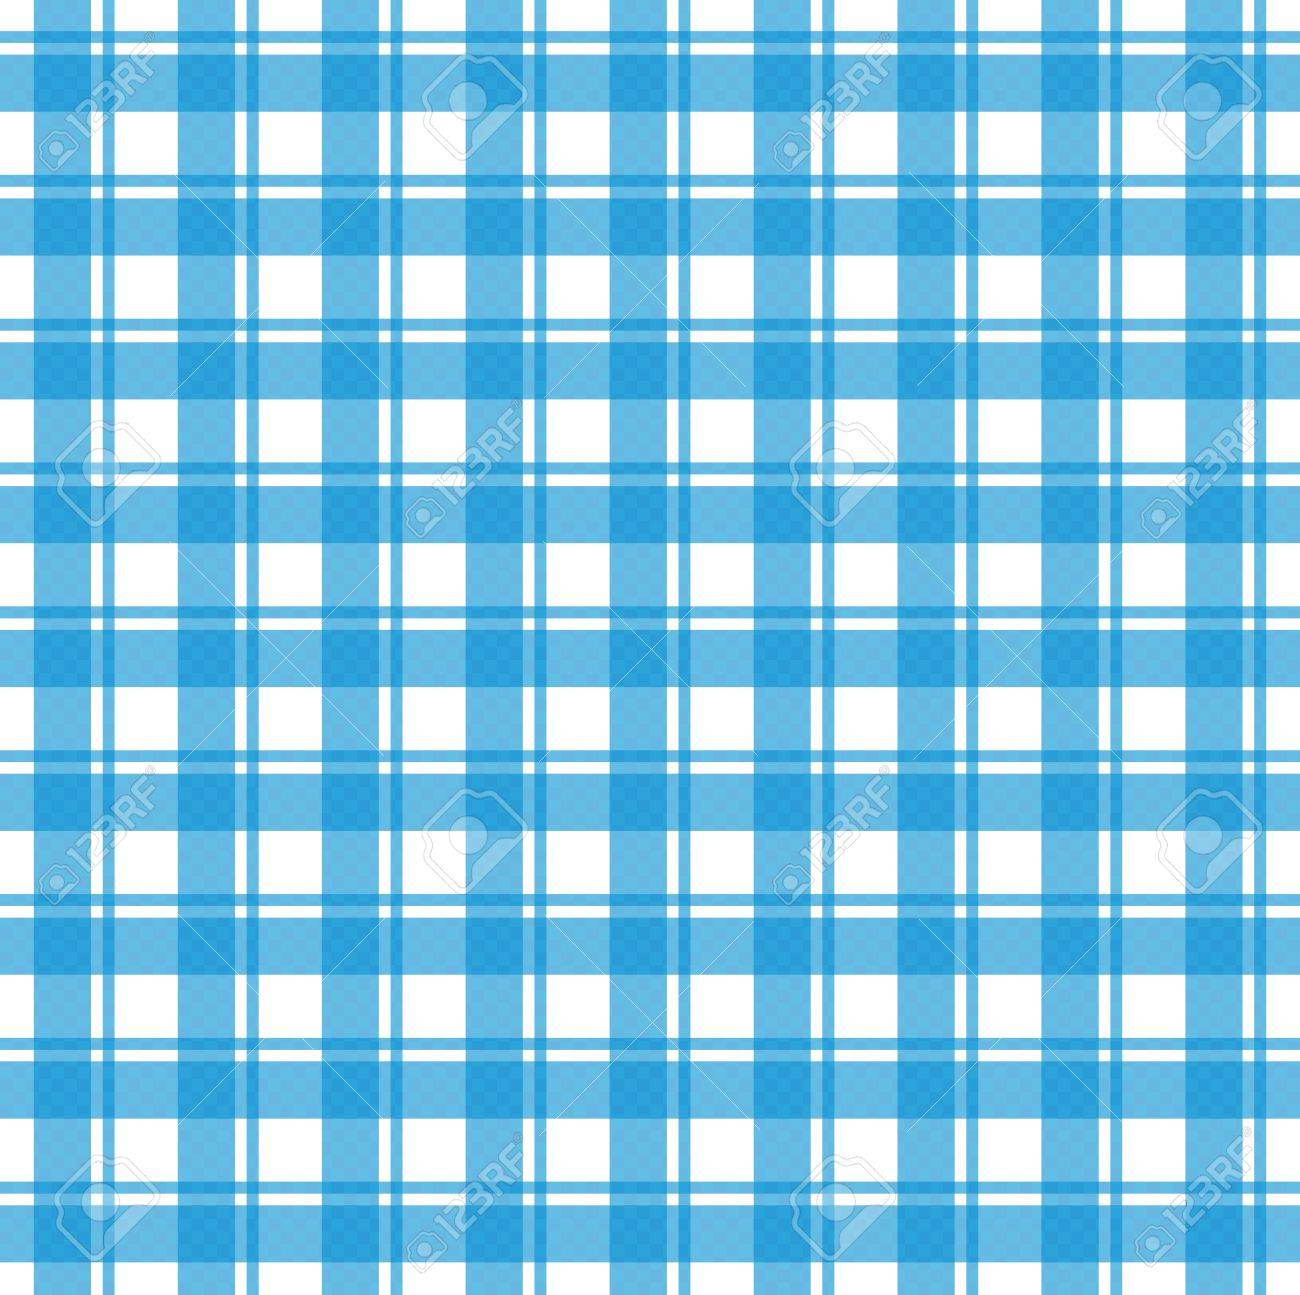 Blue tablecloth background - Blue Tablecloth Illus Pic Source